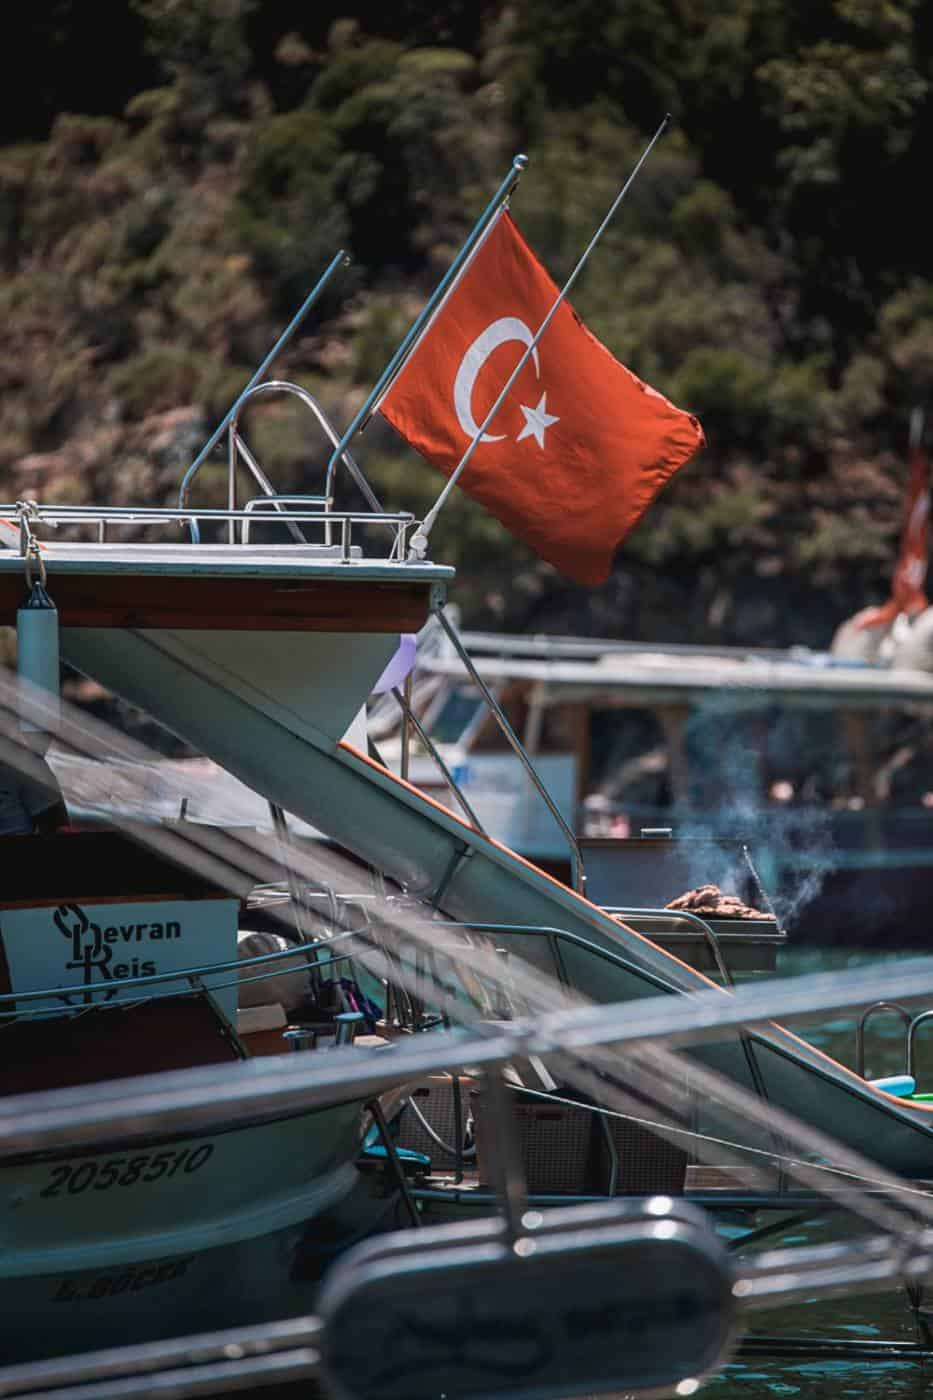 Dalyan river cruise in Marmaris Turkey